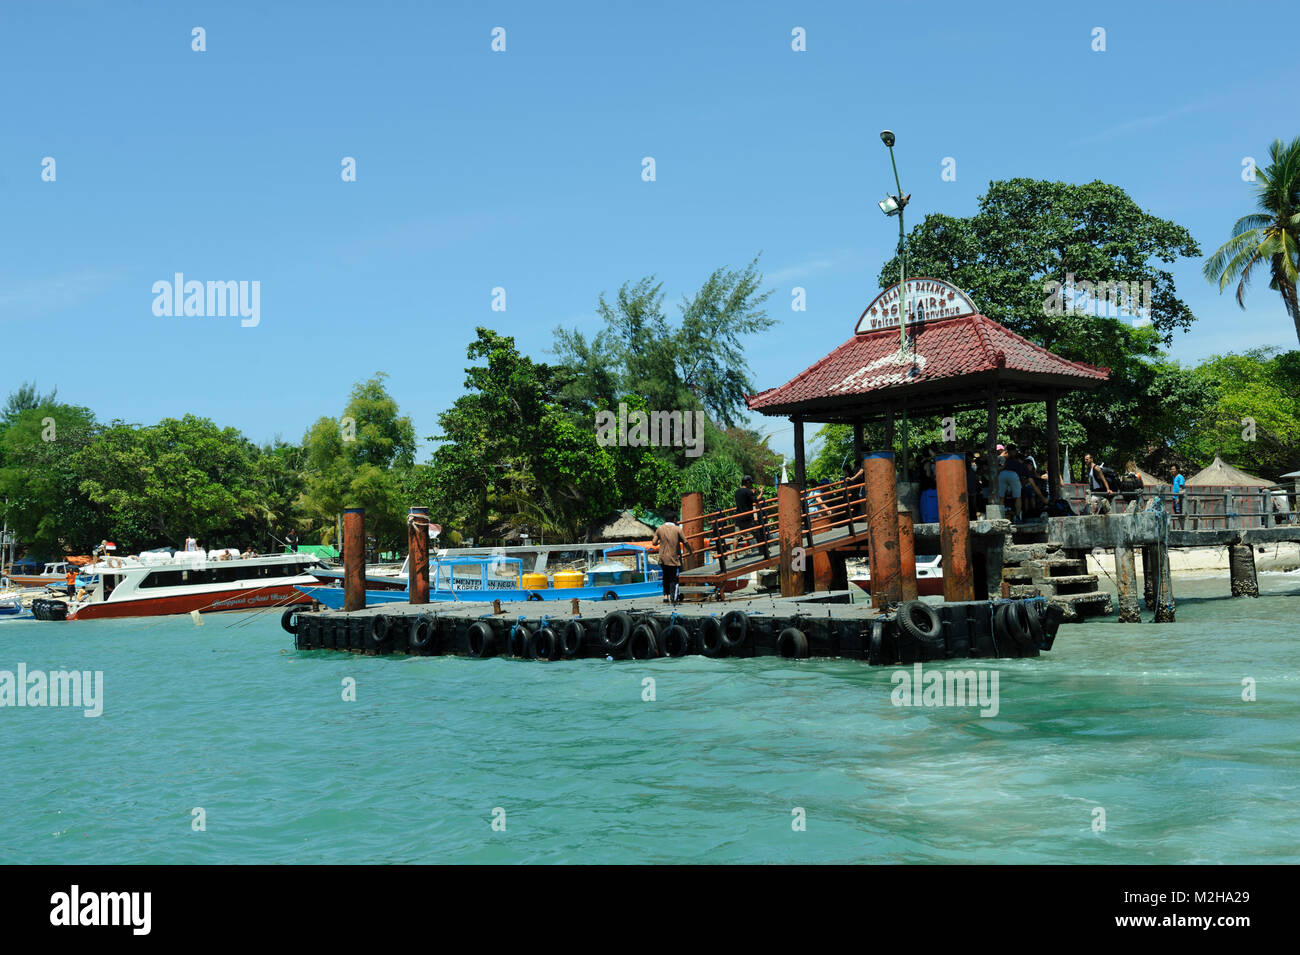 Floating dock jetty pier Gili Air Gili islands Lombok Indonesia - Stock Image